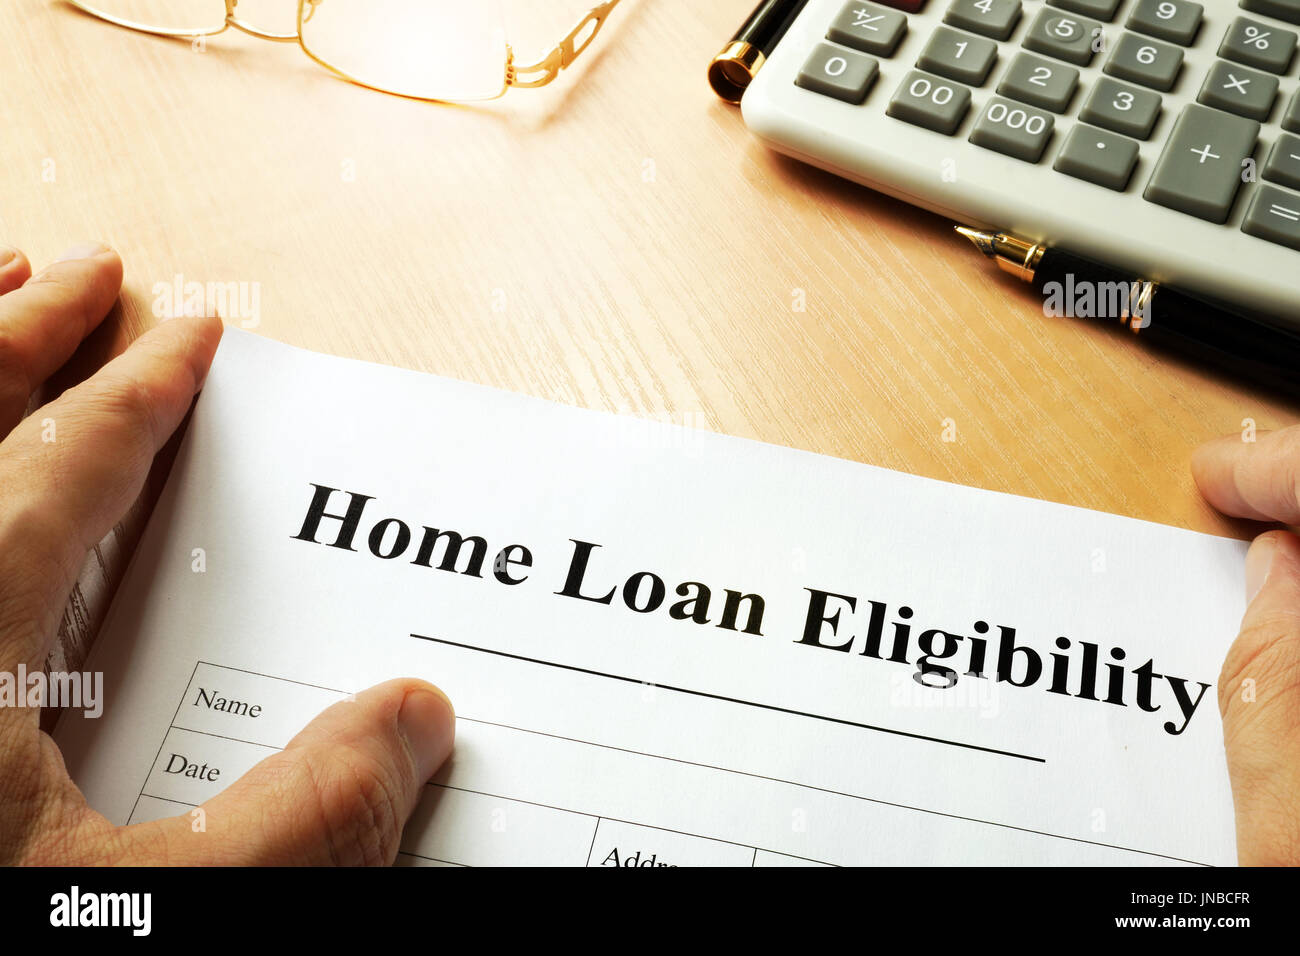 Title Loans Stock Photos & Title Loans Stock Images - Alamy